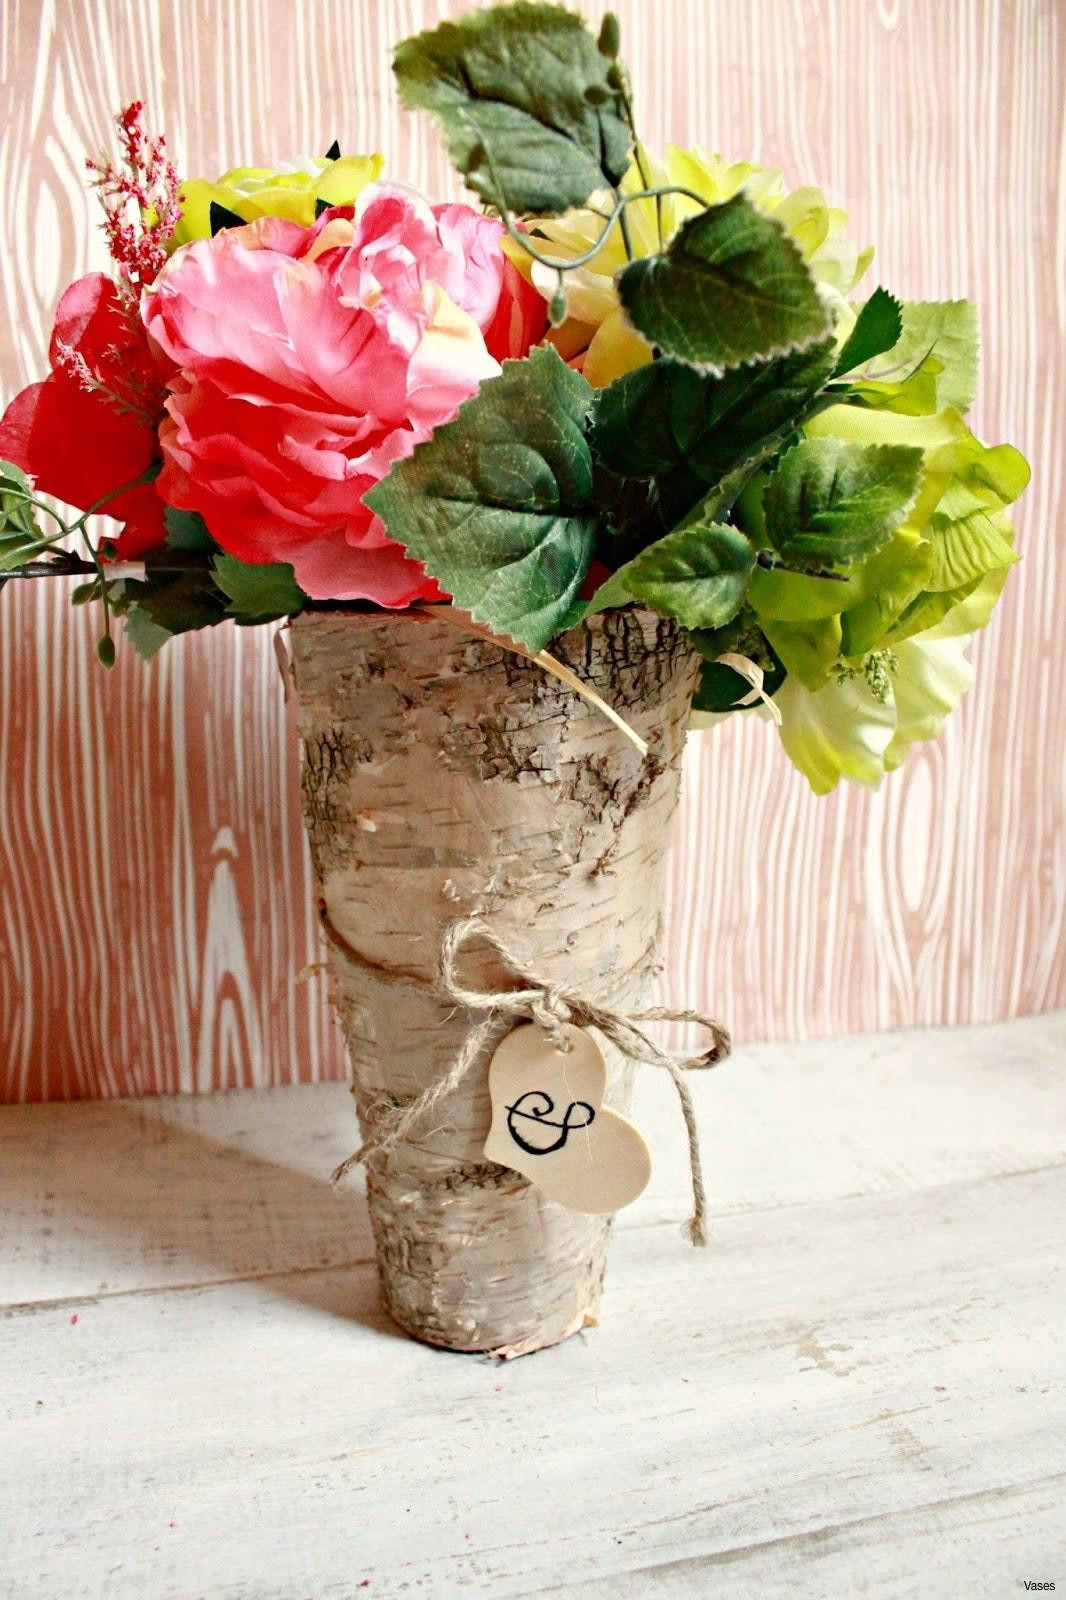 mason jar vase of diy outdoor wedding decorations luxury flowers and decorations for throughout diy outdoor wedding decorations luxury flowers and decorations for weddings h vases diy wood vase i